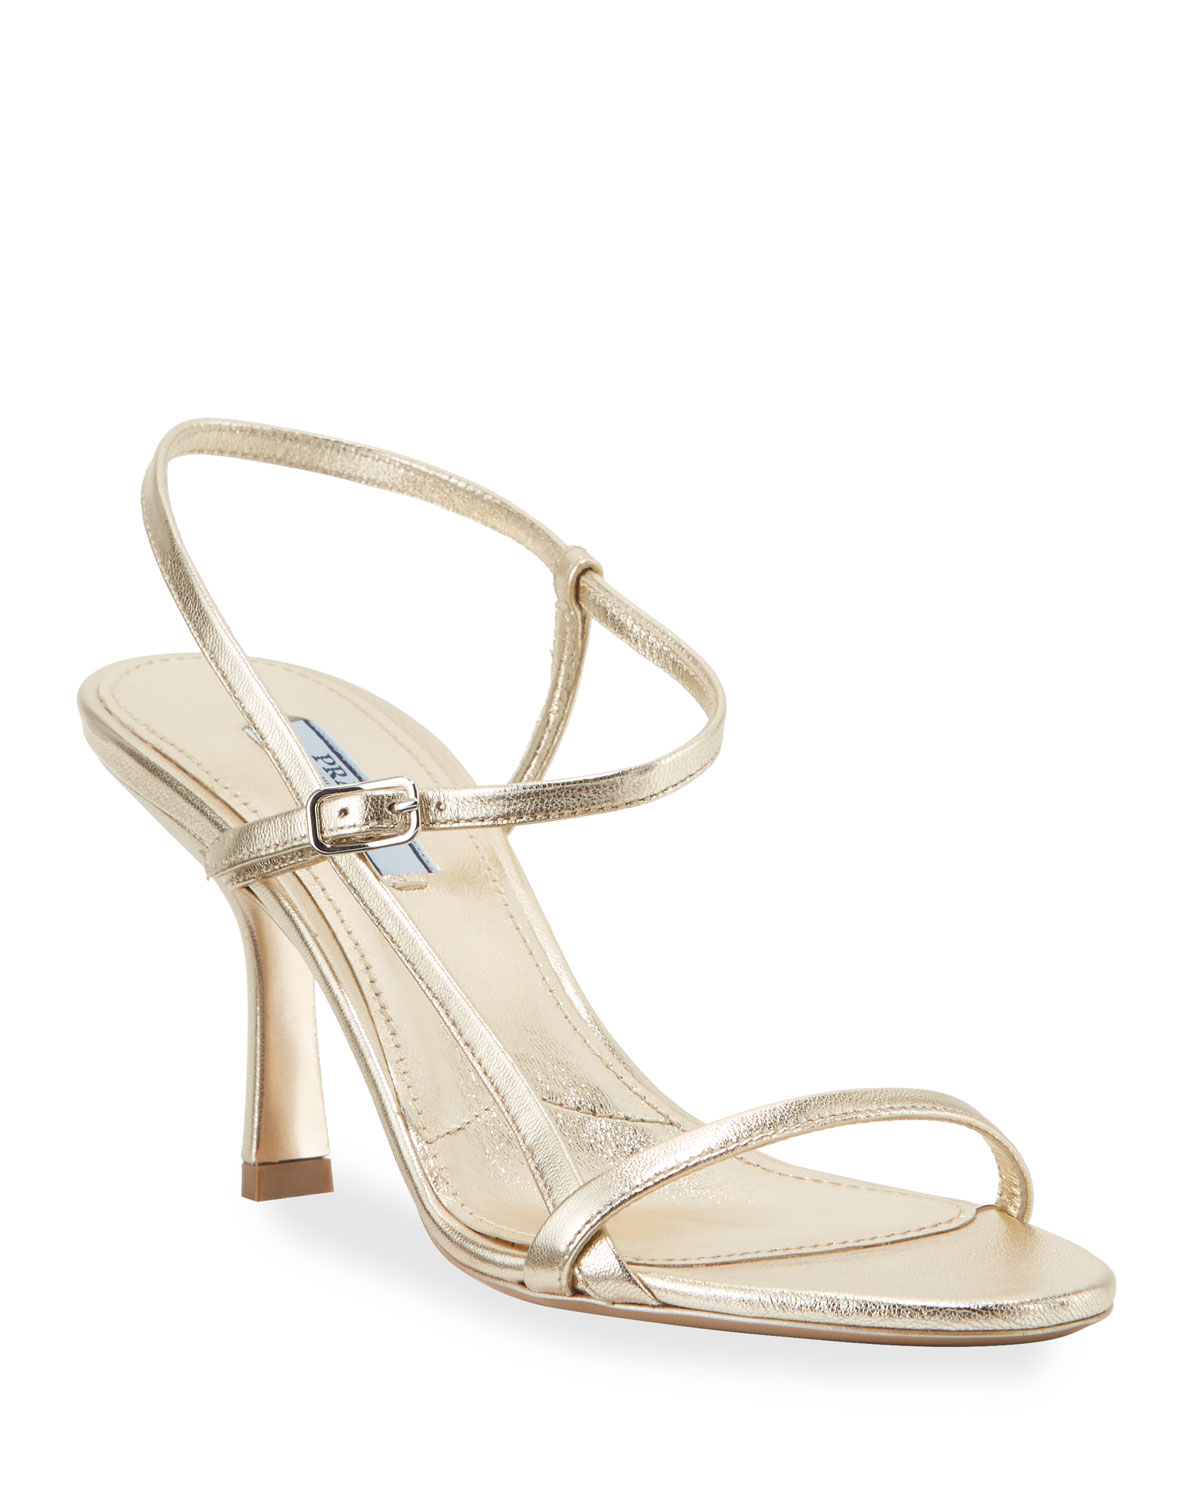 Metallic Strappy 75mm Sandals by Prada